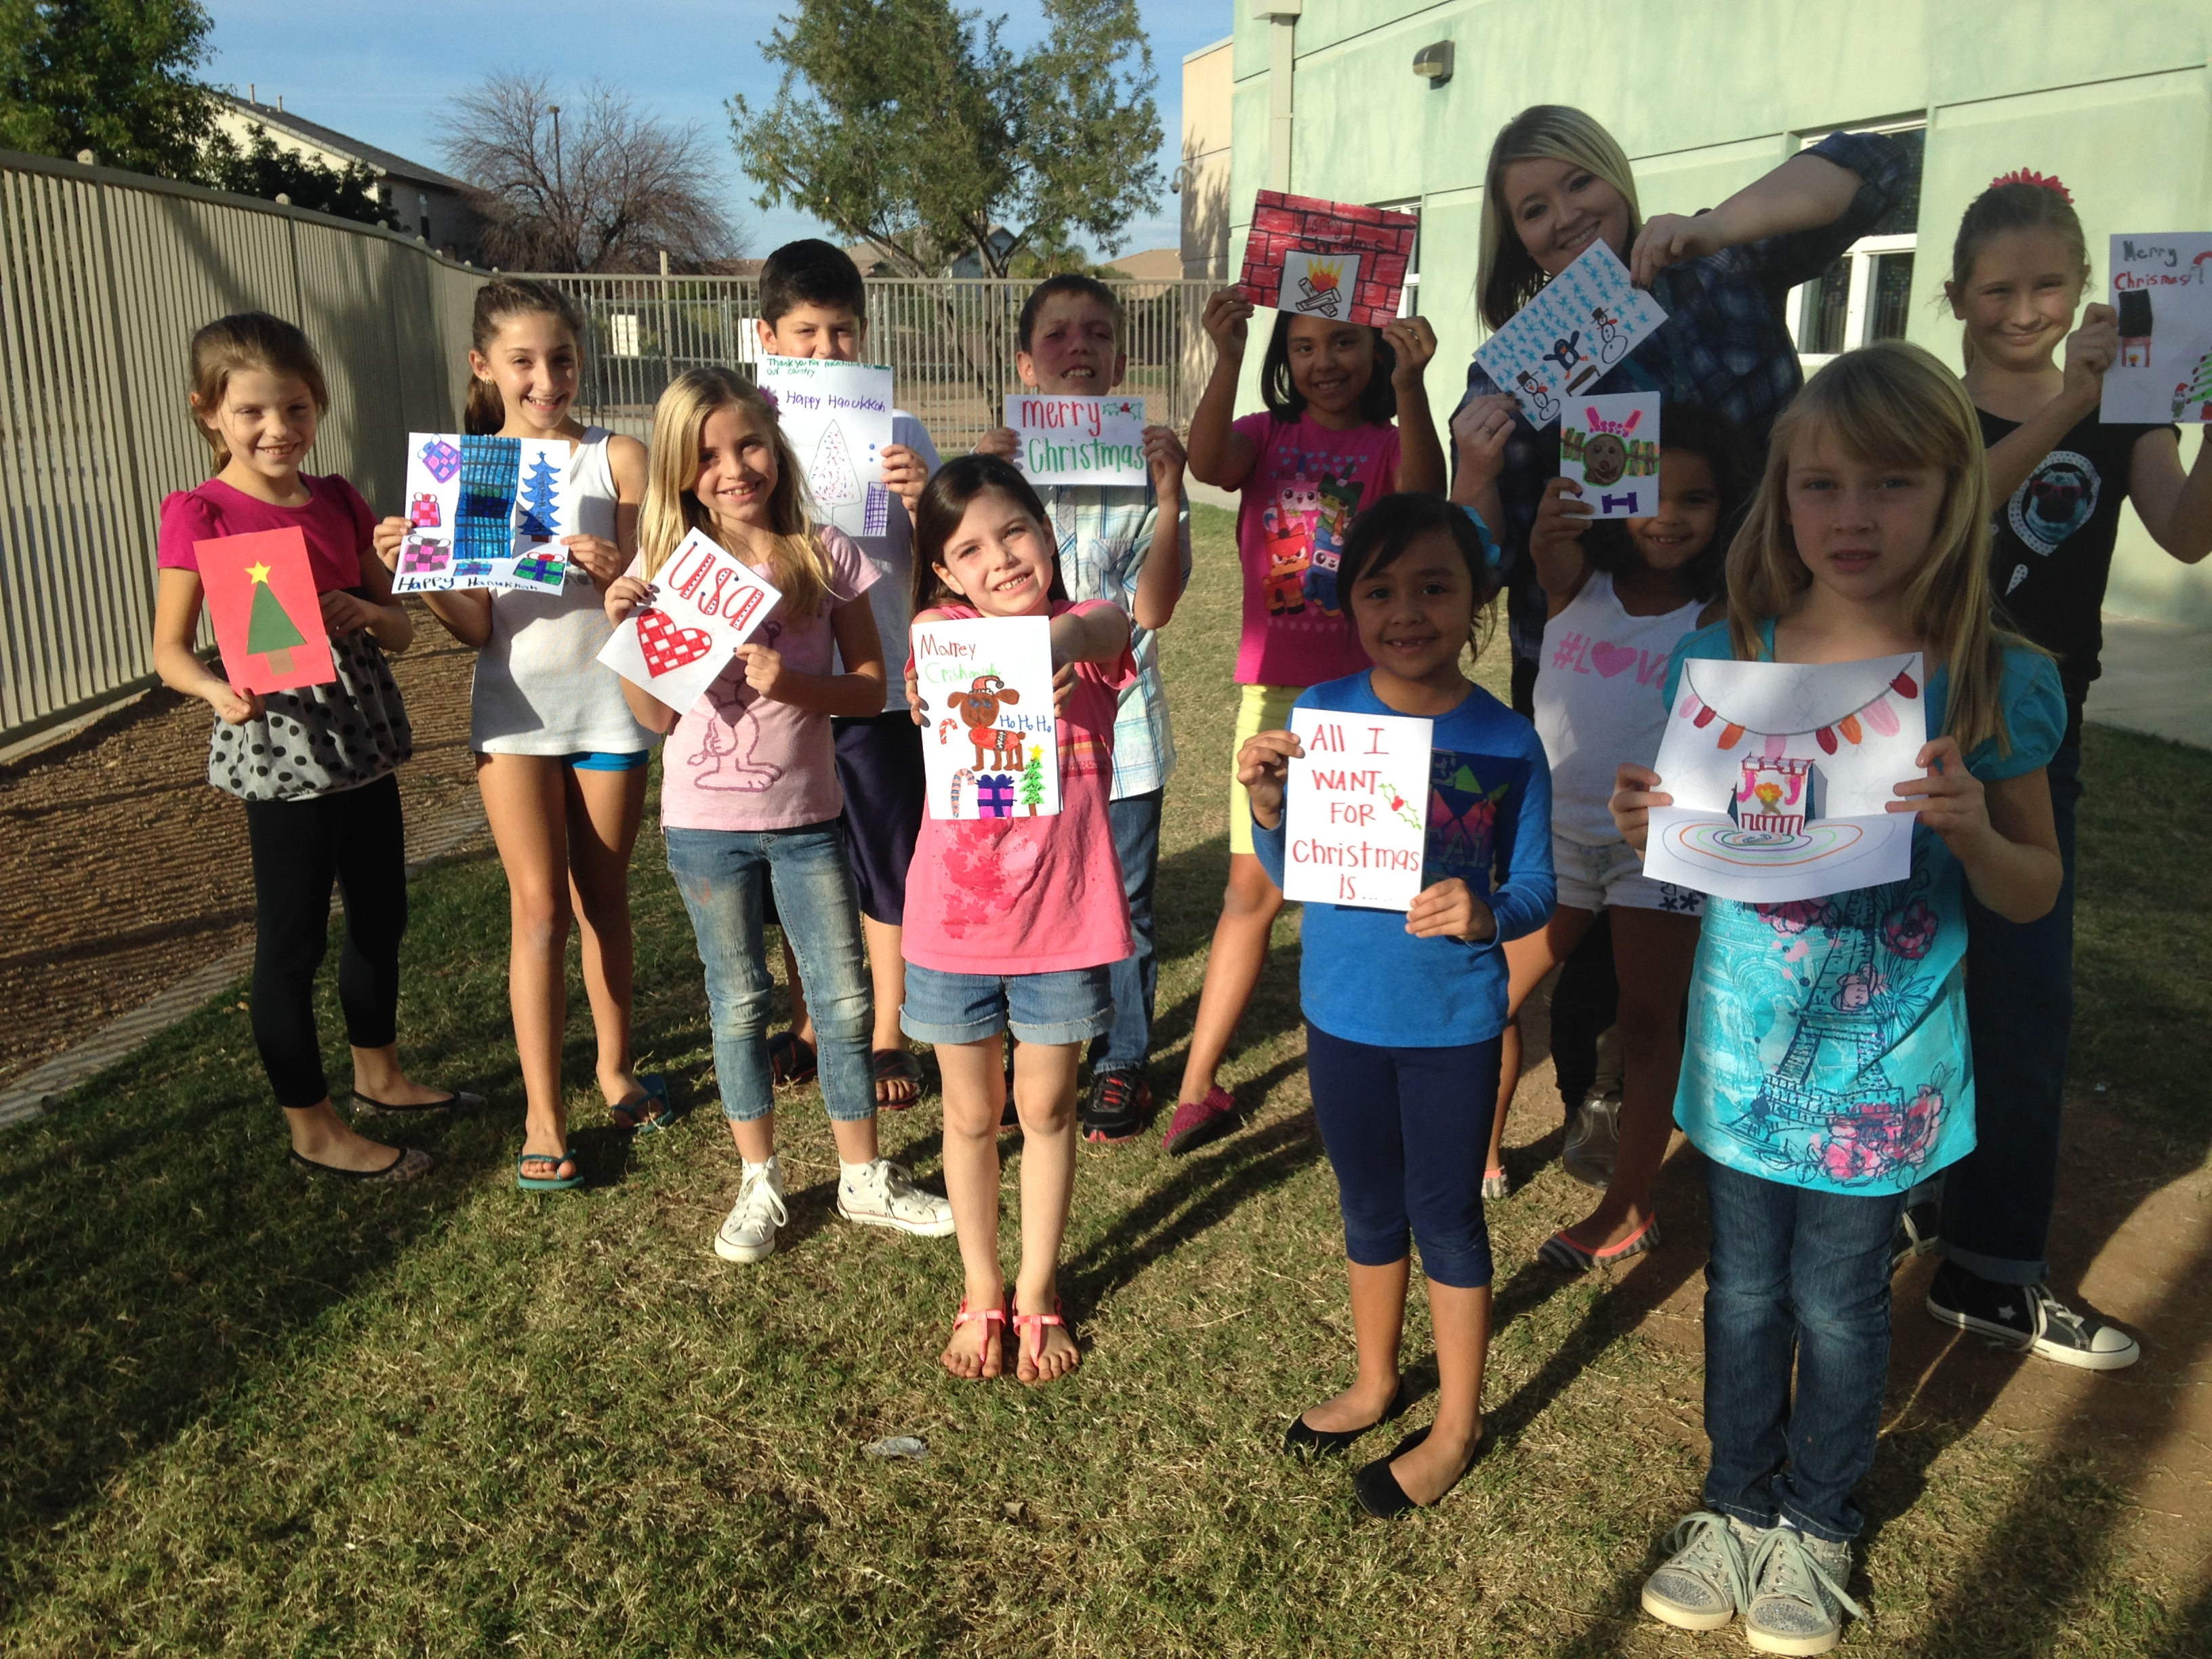 Higley students create 'Smiles' for soldiers PowerRanchSendaSoldierASmile